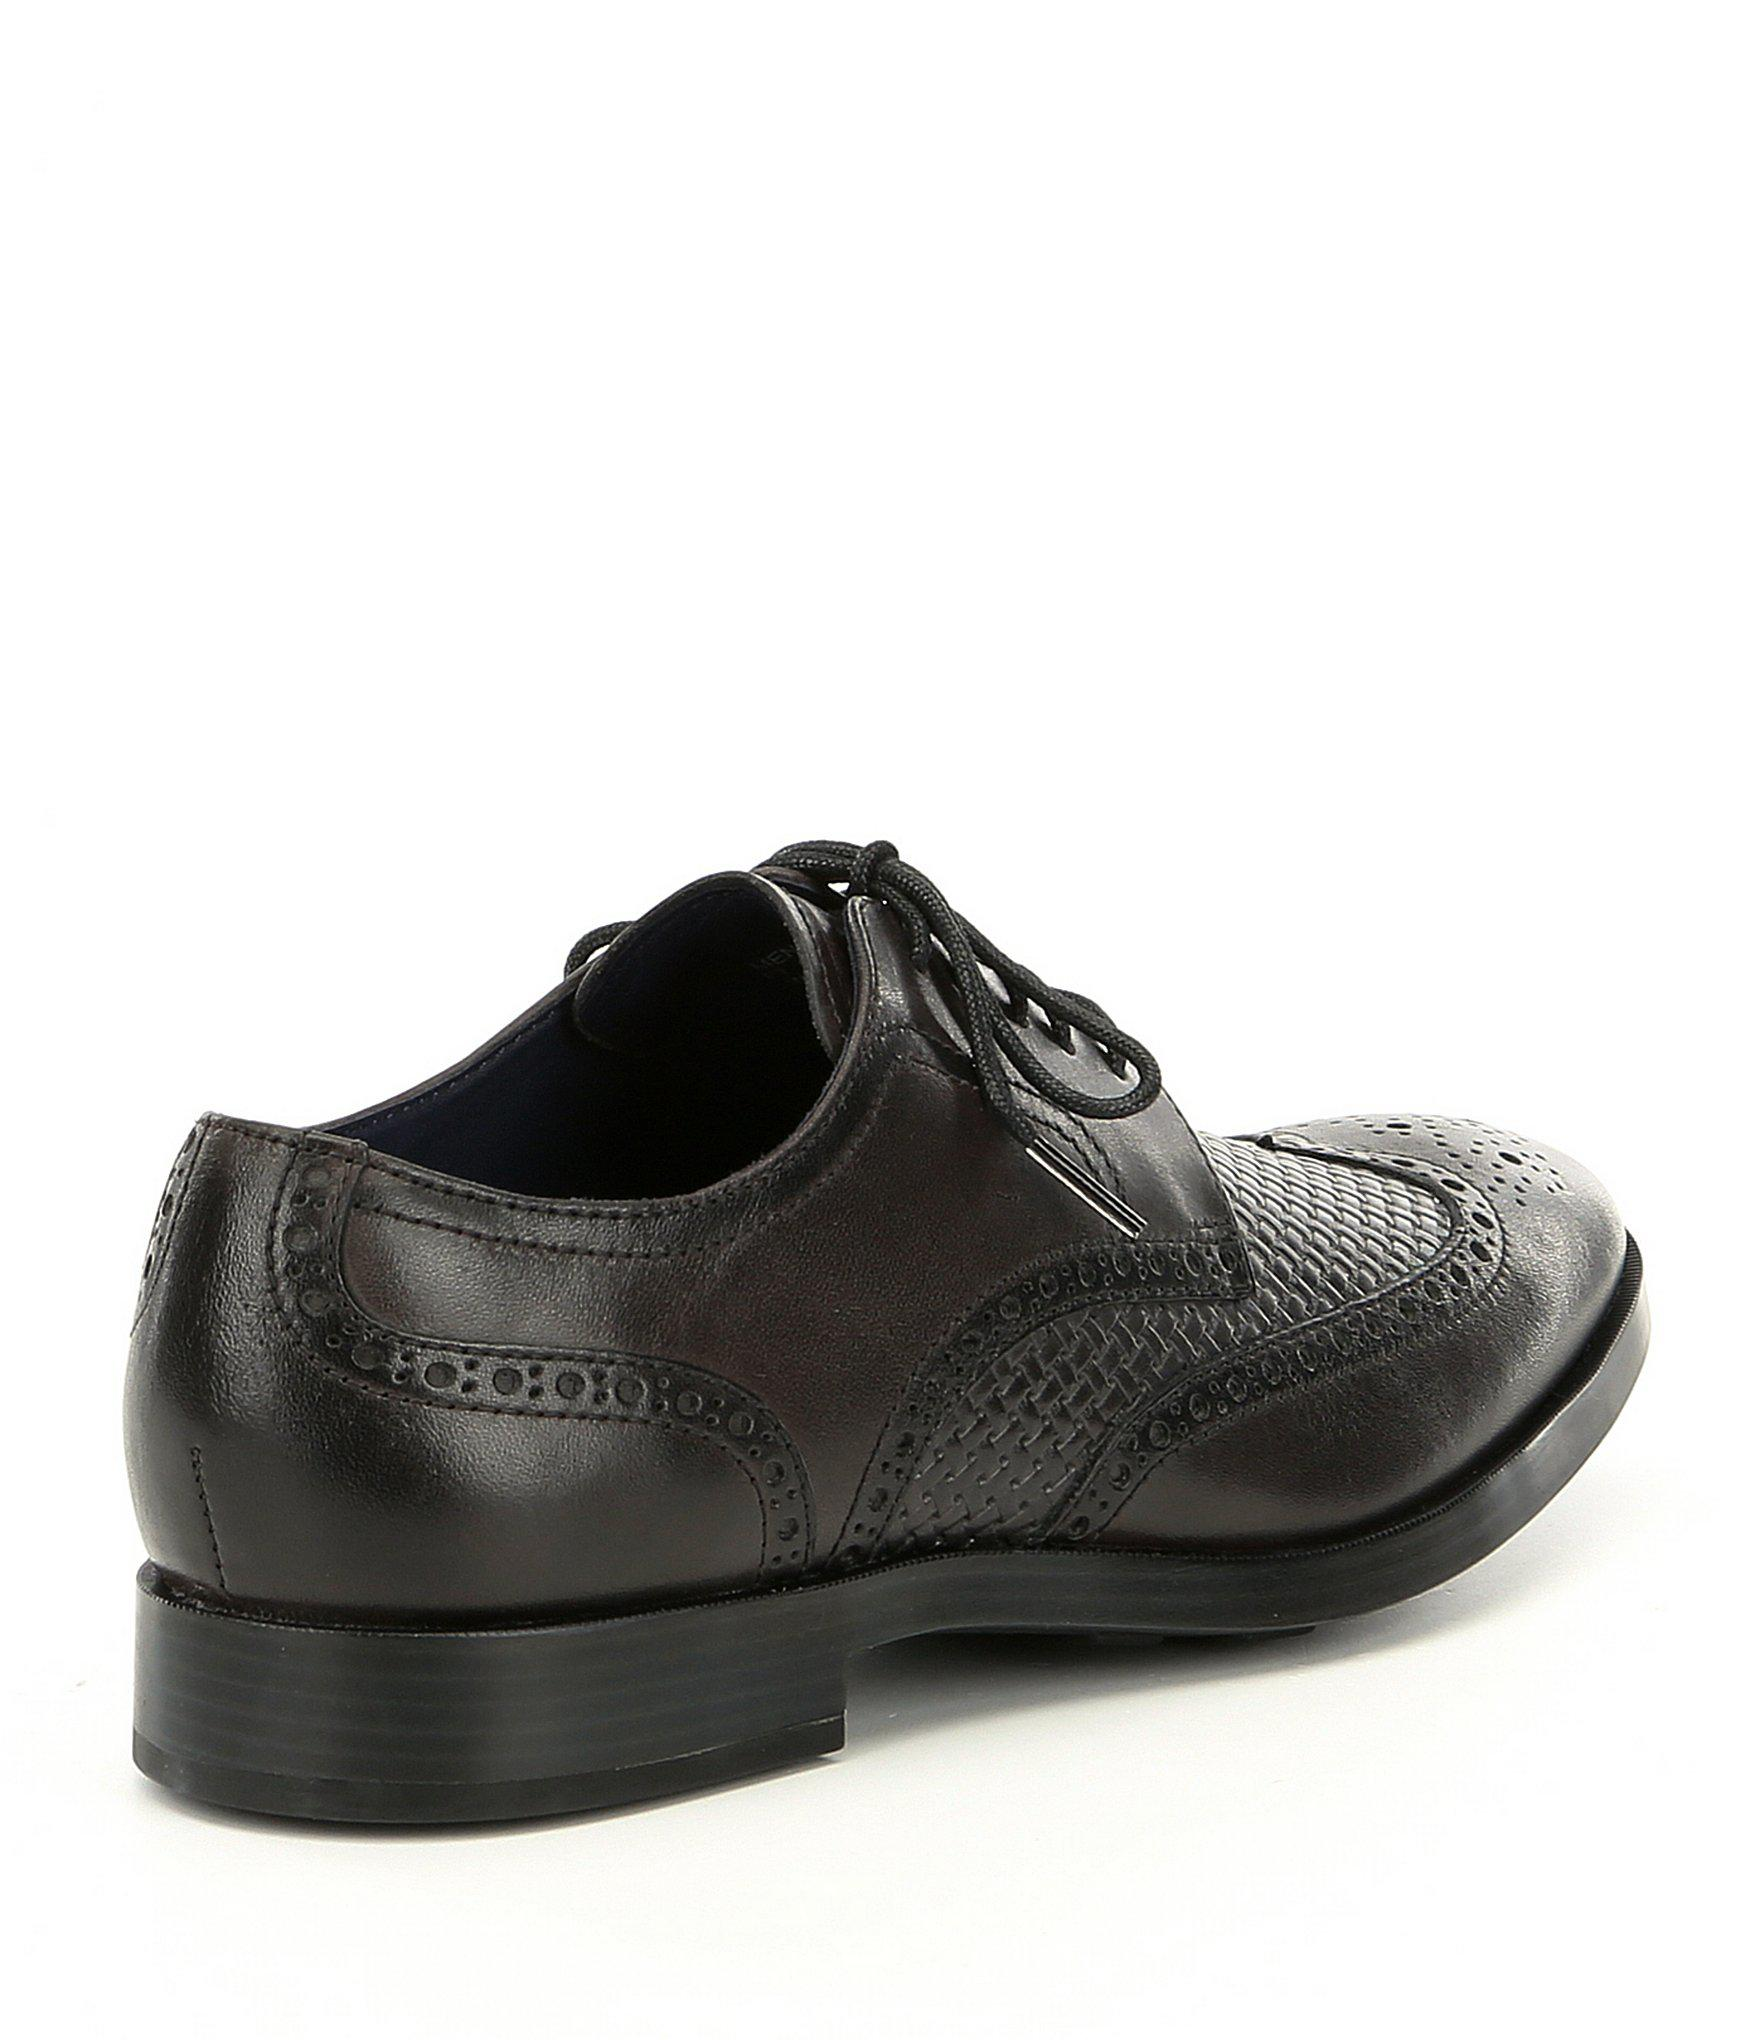 8f4b1e85c Cole Haan Men's Jefferson Grand Wingtip Oxfords in Black for Men - Lyst